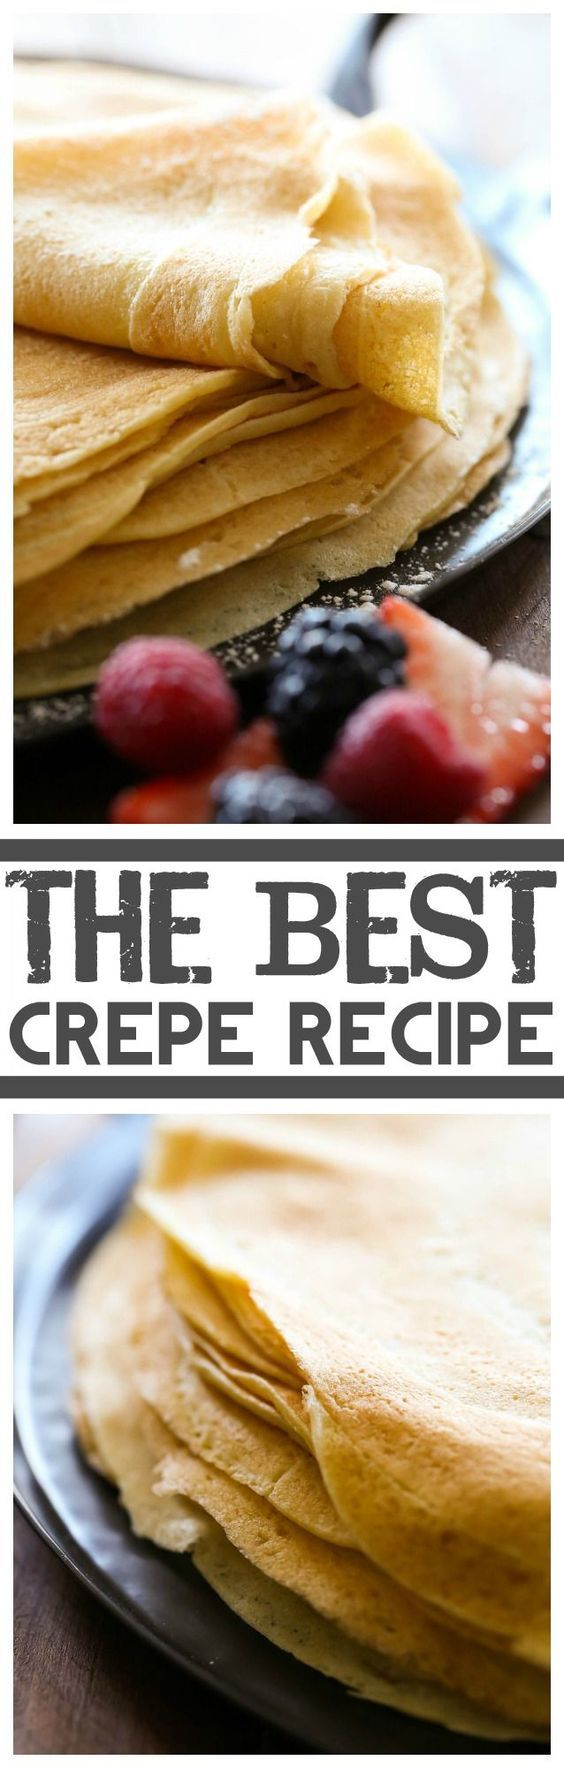 The BEST Crepe Recipe... I have tried several recipes looking for the perfect flavor and batter for crepes and have finally found it! This recipe is awesome!: